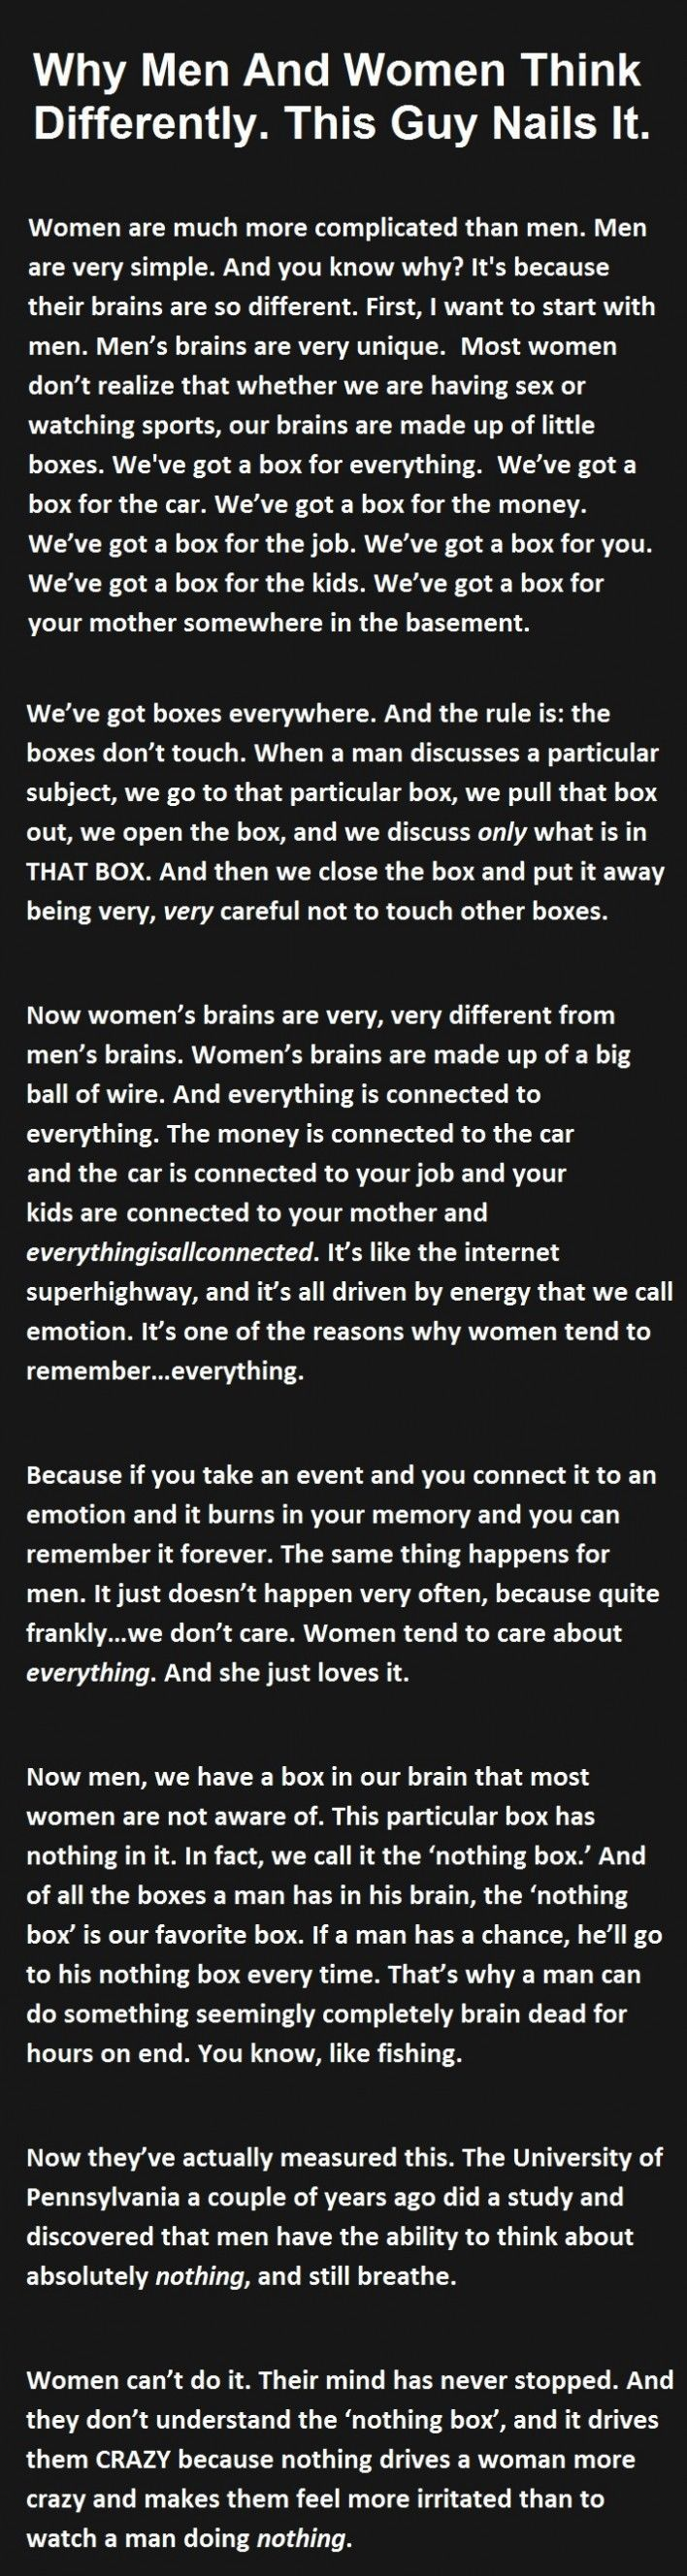 Life quotes and sayings quotes lol rofl com - Why Men And Women Think Differently This Guy Nails It Funny Quotes Quote Jokes Story Lol